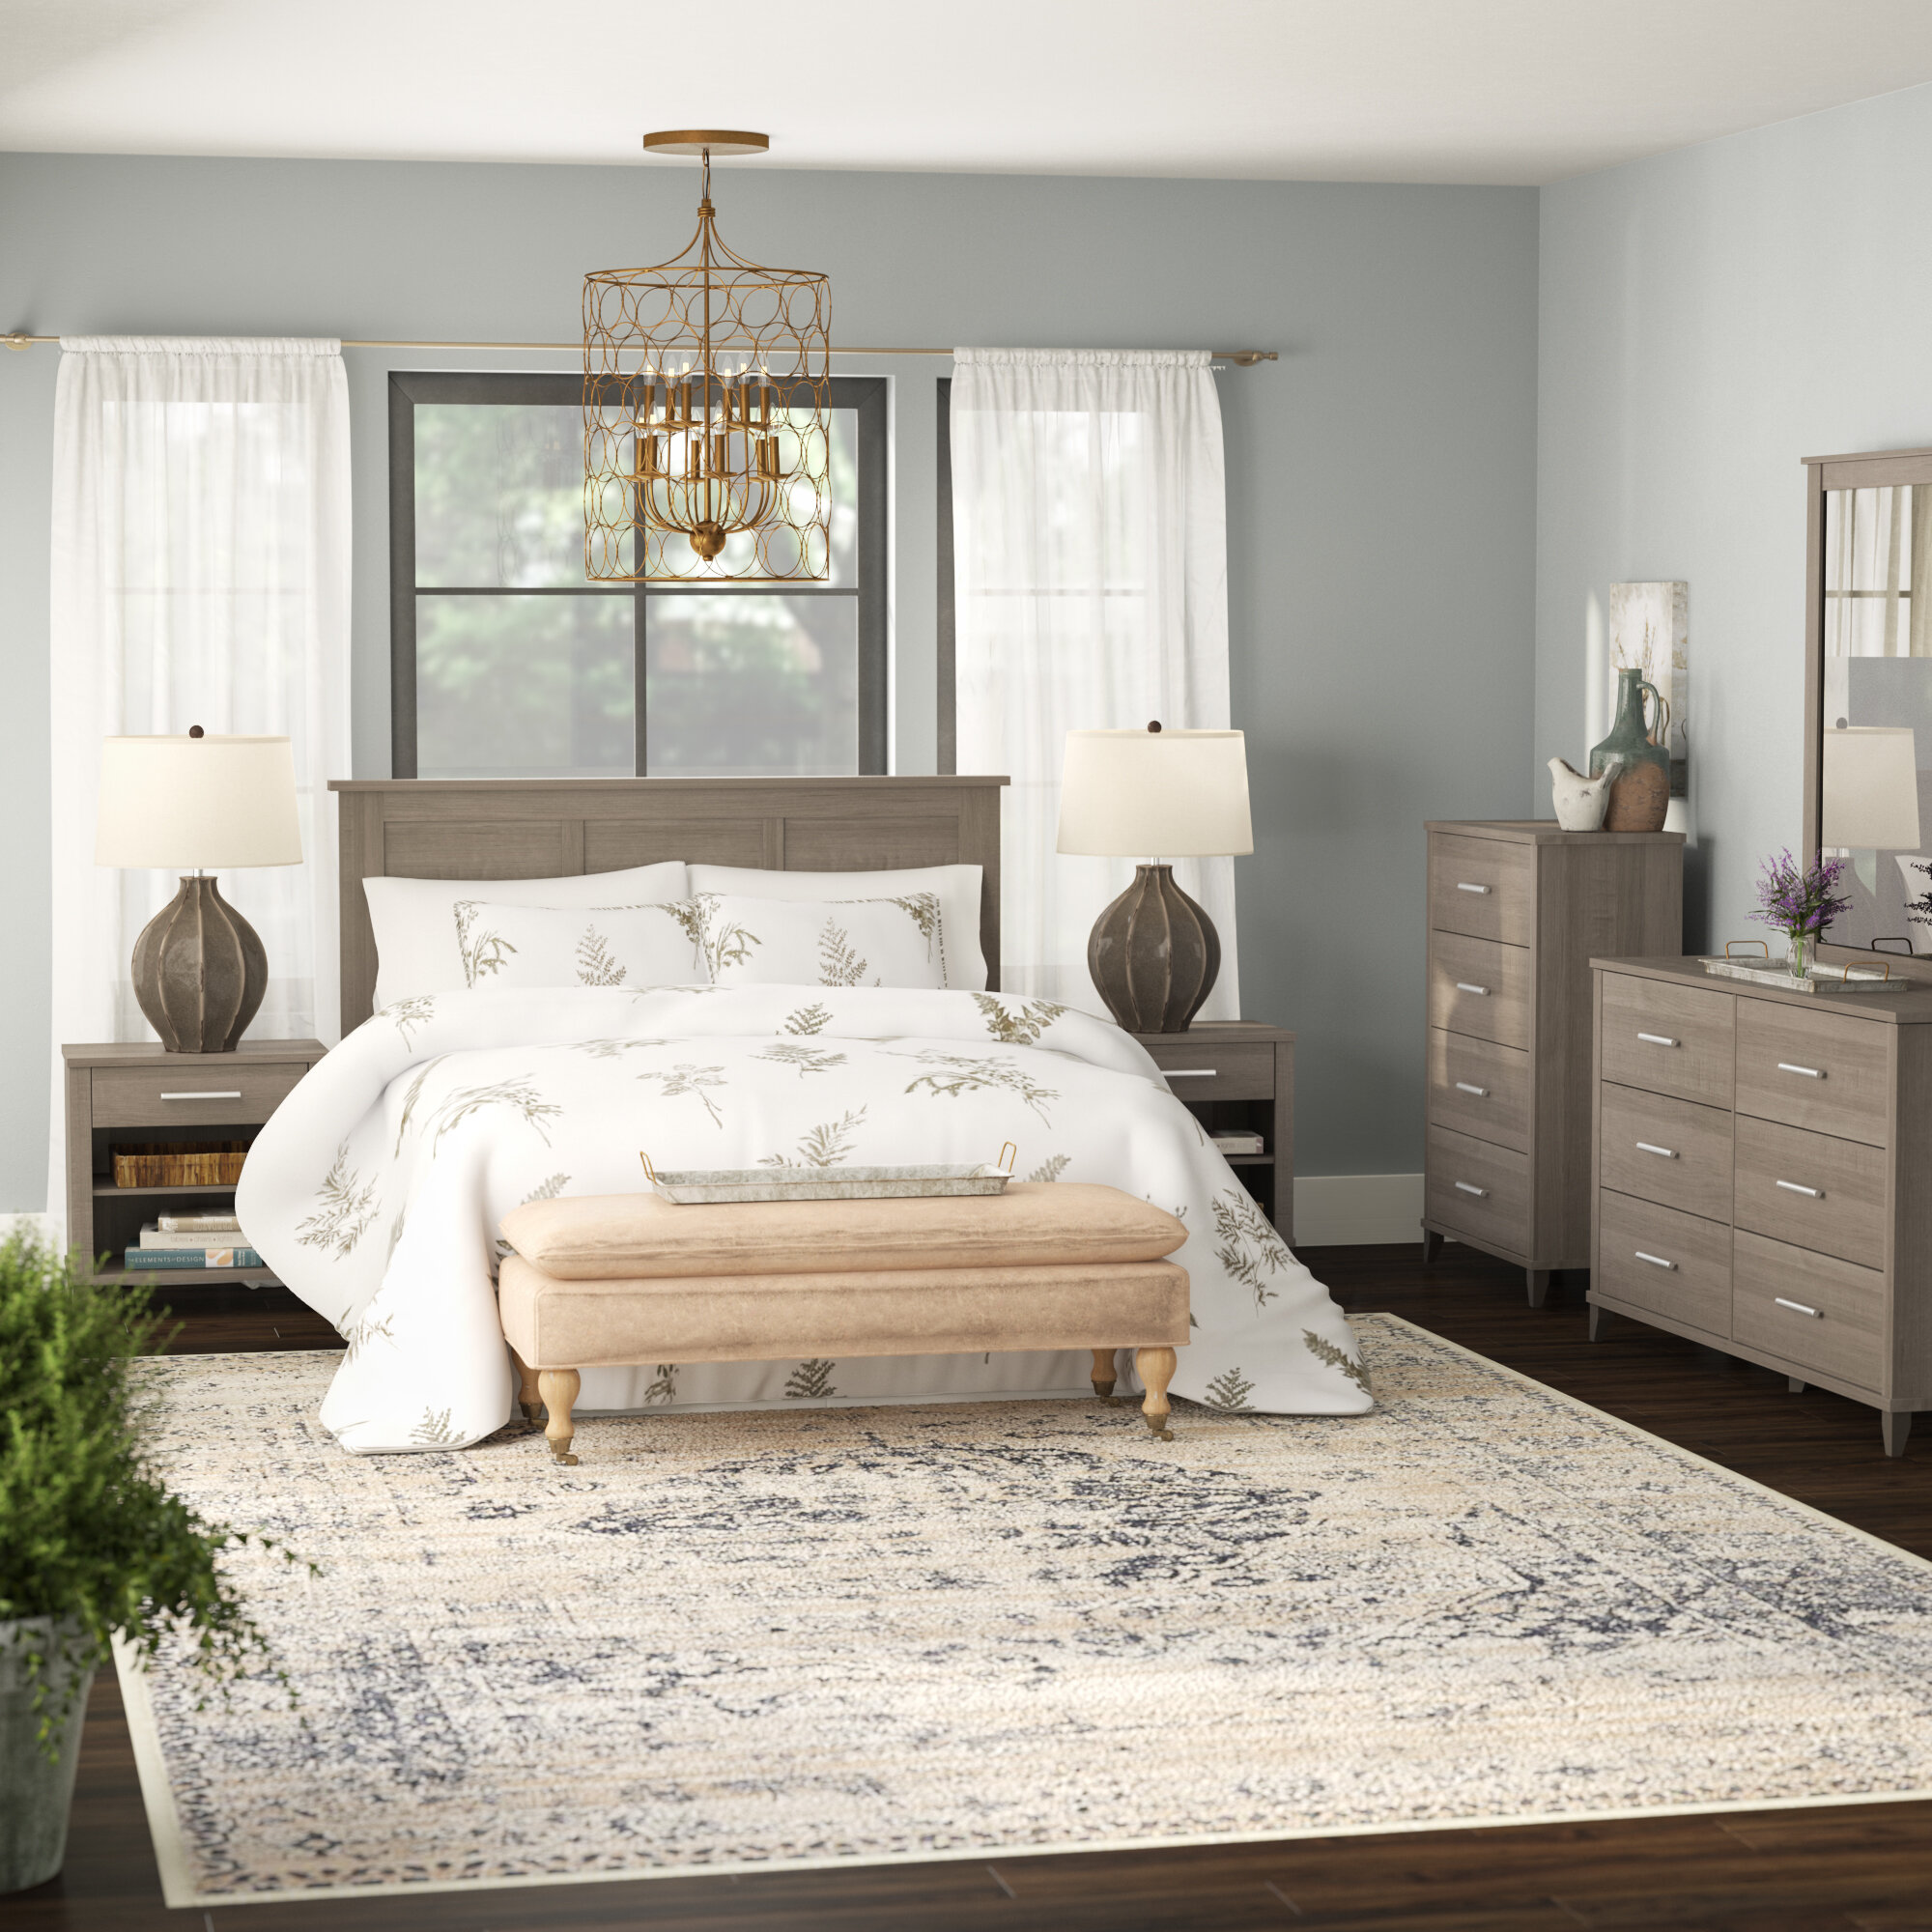 Laurel Foundry Modern Farmhouse Valencia Queen 6 Piece Bedroom Set ...